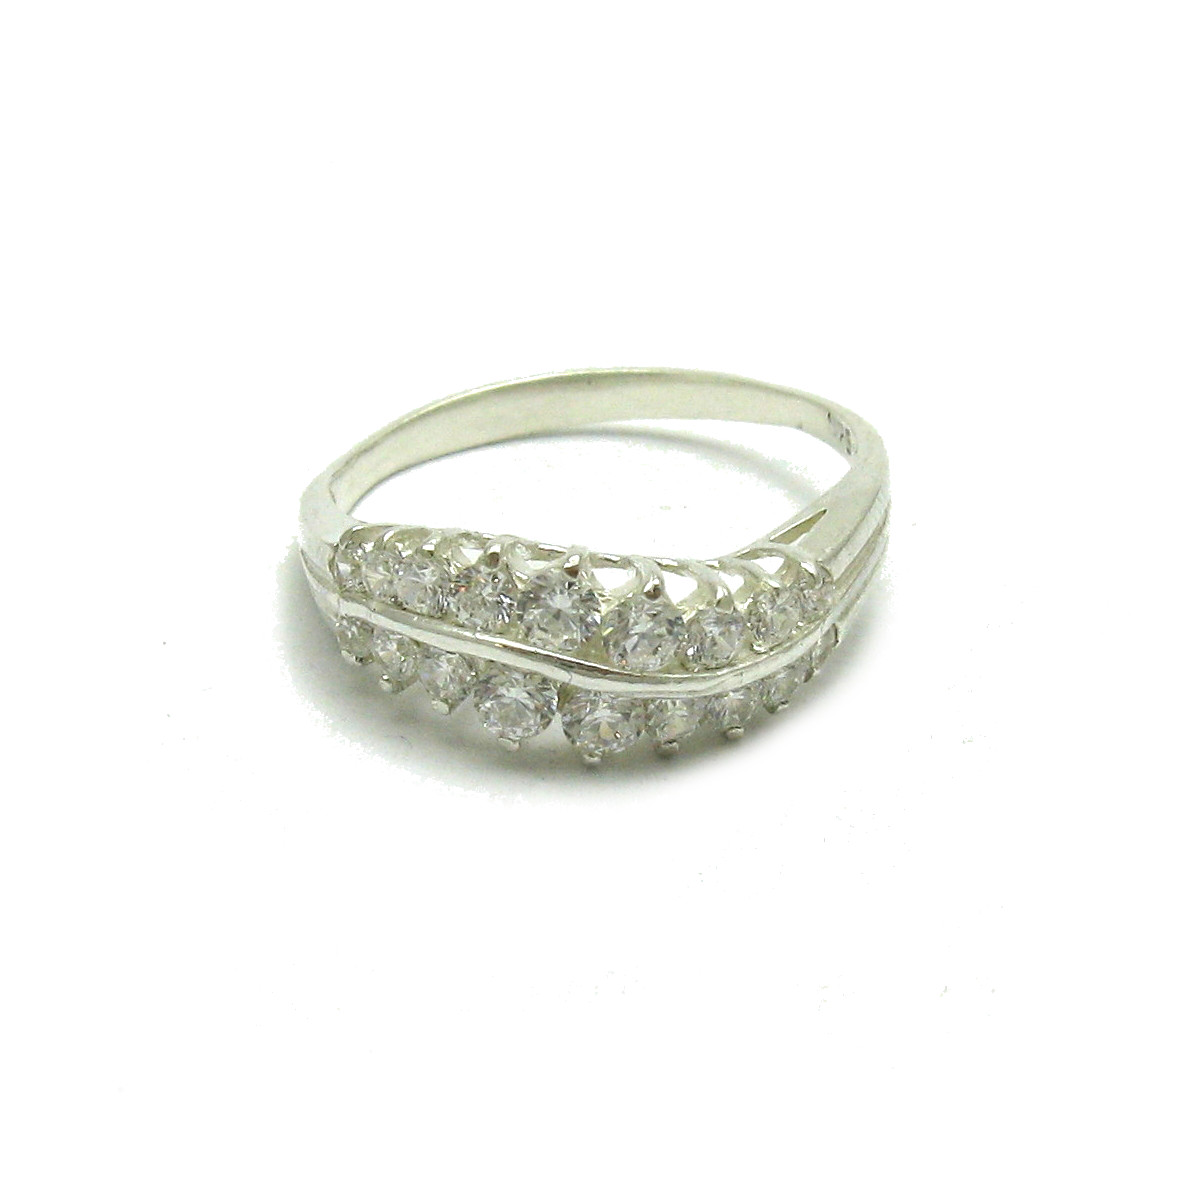 Silver ring - R001662